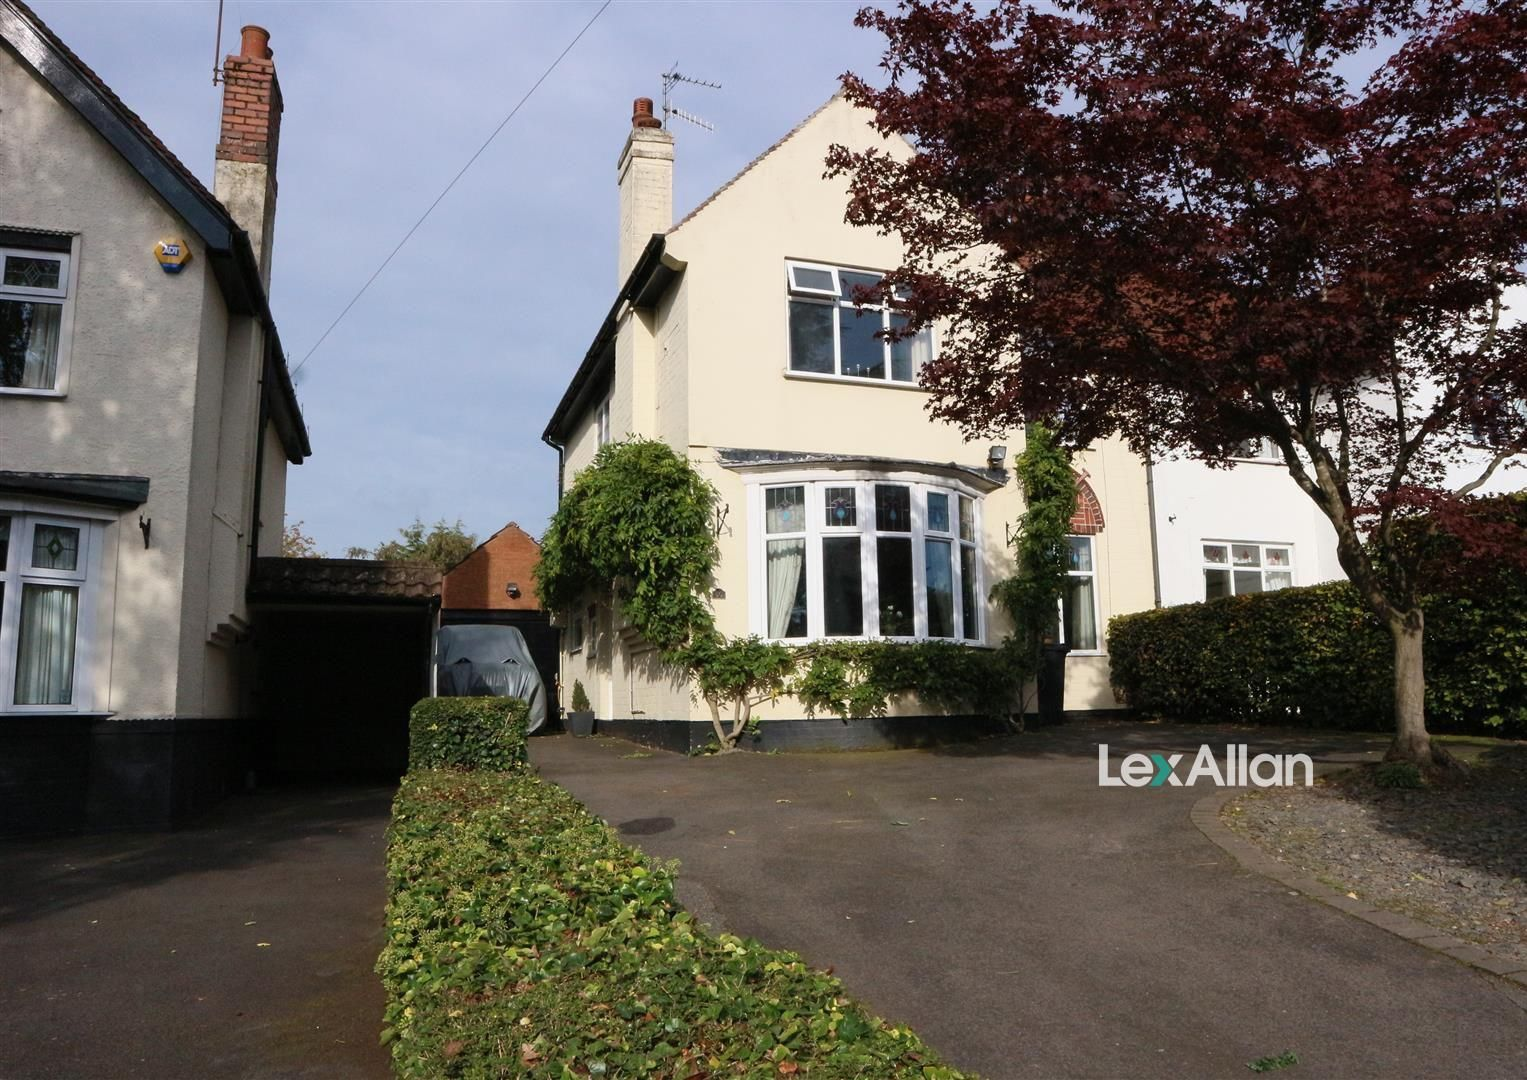 3 bed semi-detached for sale in Norton - Property Image 1